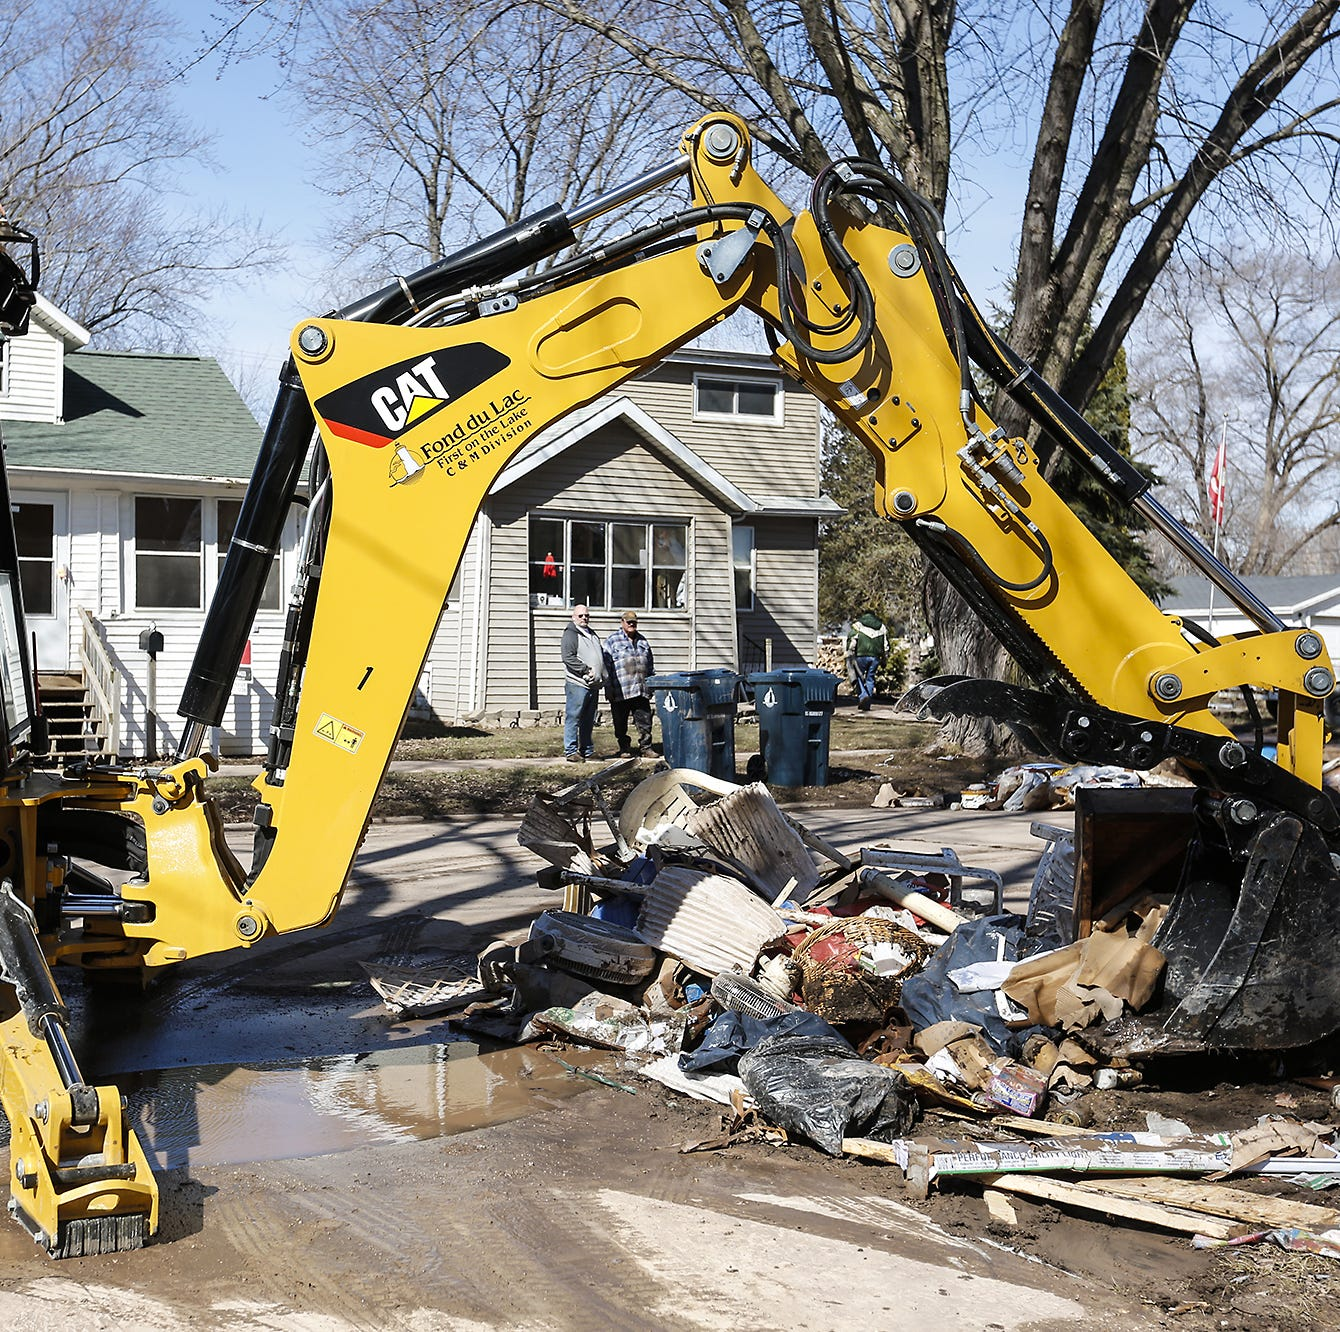 Layers of mud and chaos: Fond du Lac residents clean up after flood devastation